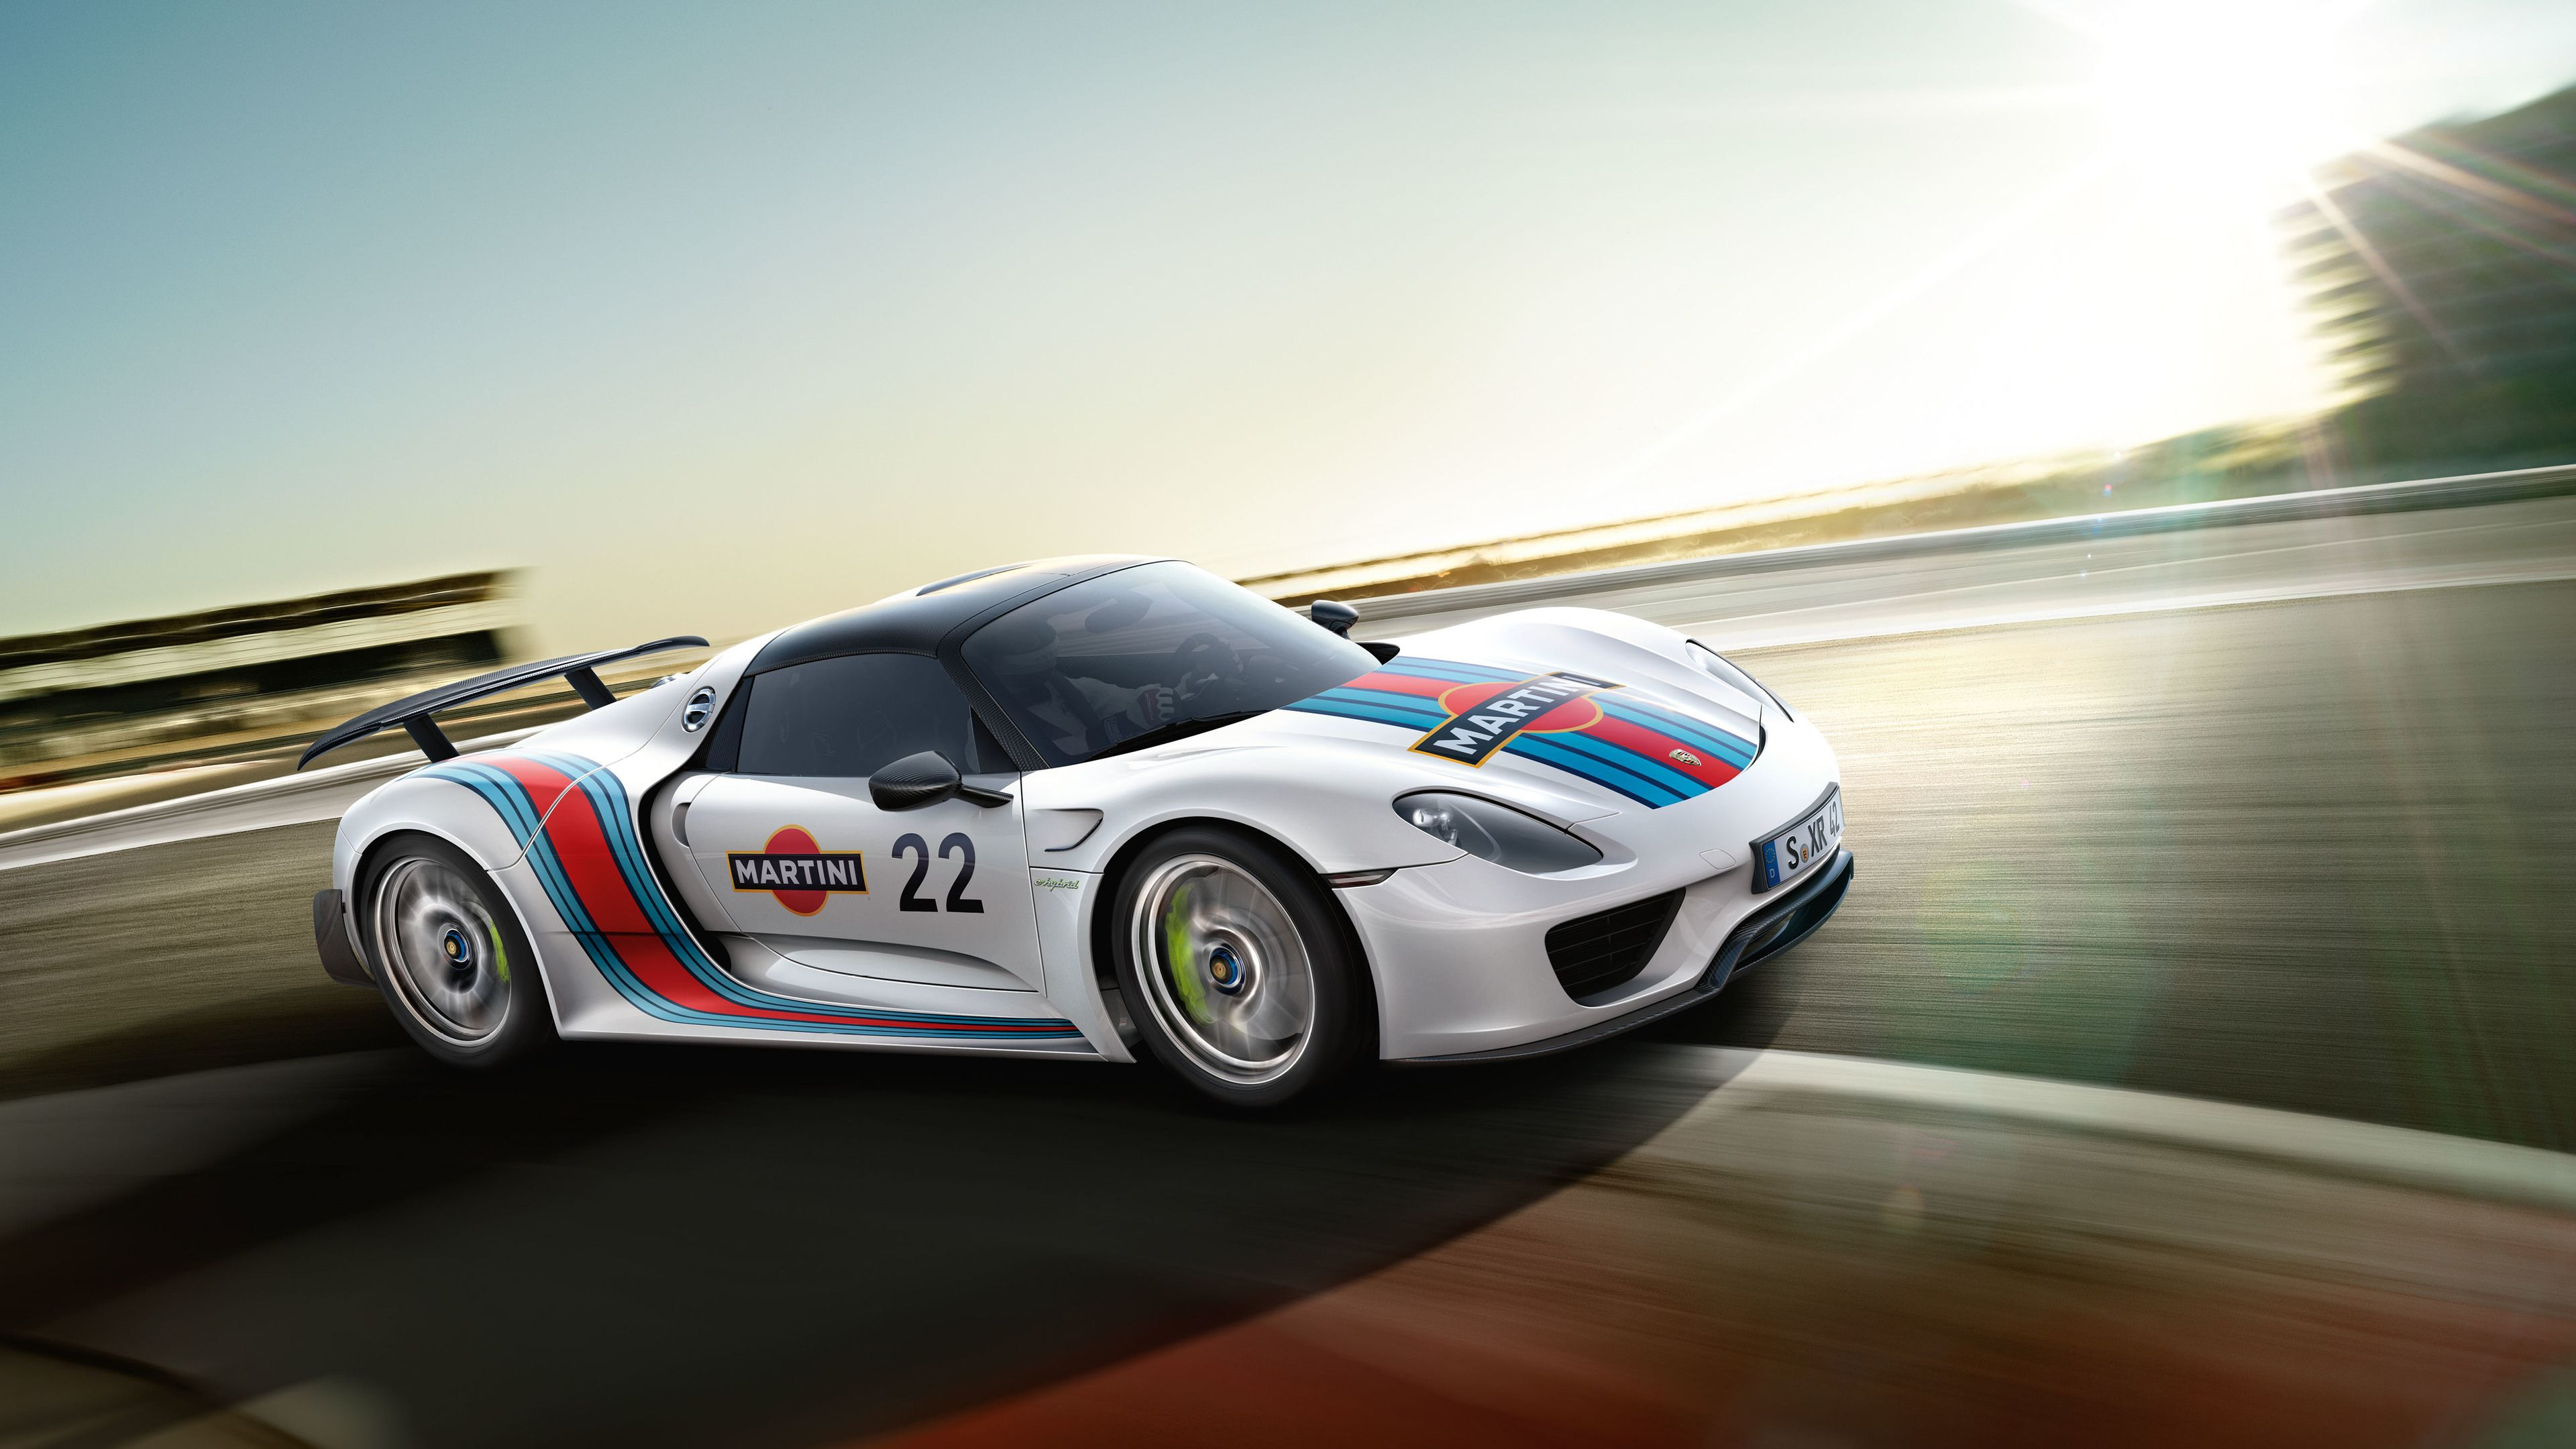 Martini Porsche 918 Porsche Wallpapers Porsche 918 Wallpapers Hd Wallpapers Cars Wallpapers 5k Wallpapers 4k Wallpapers Porsche 918 Porsche Martini Racing